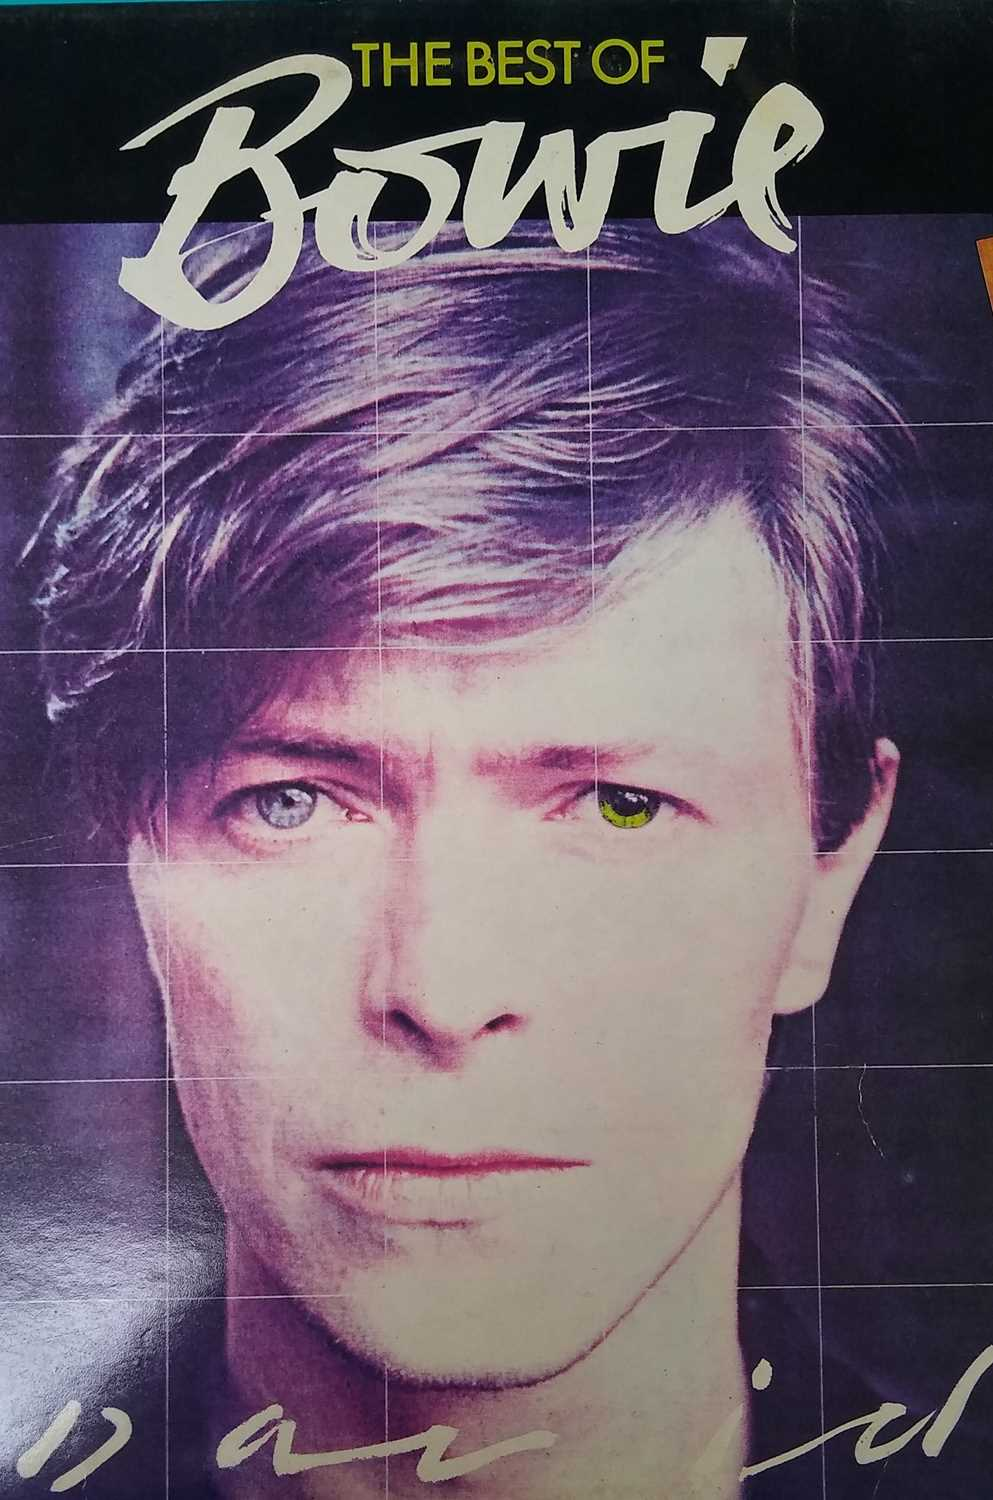 David Bowie - The Best of Bowie Album - Image 2 of 6